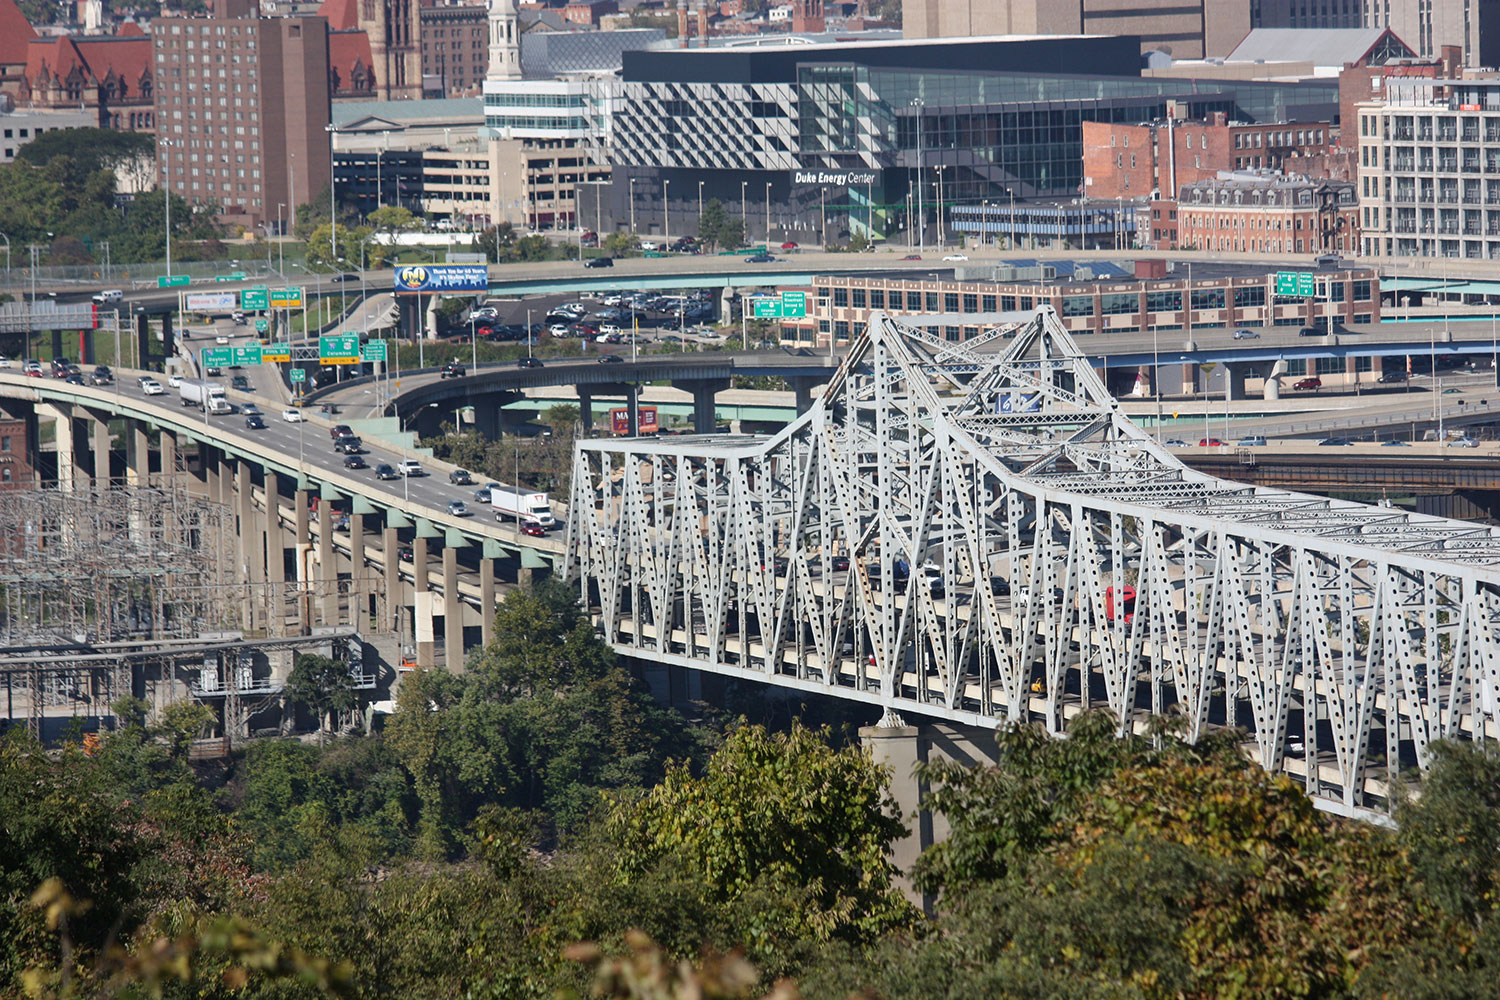 Statement from Mark Policinski regarding safety analysis of  Brent Spence Bridge